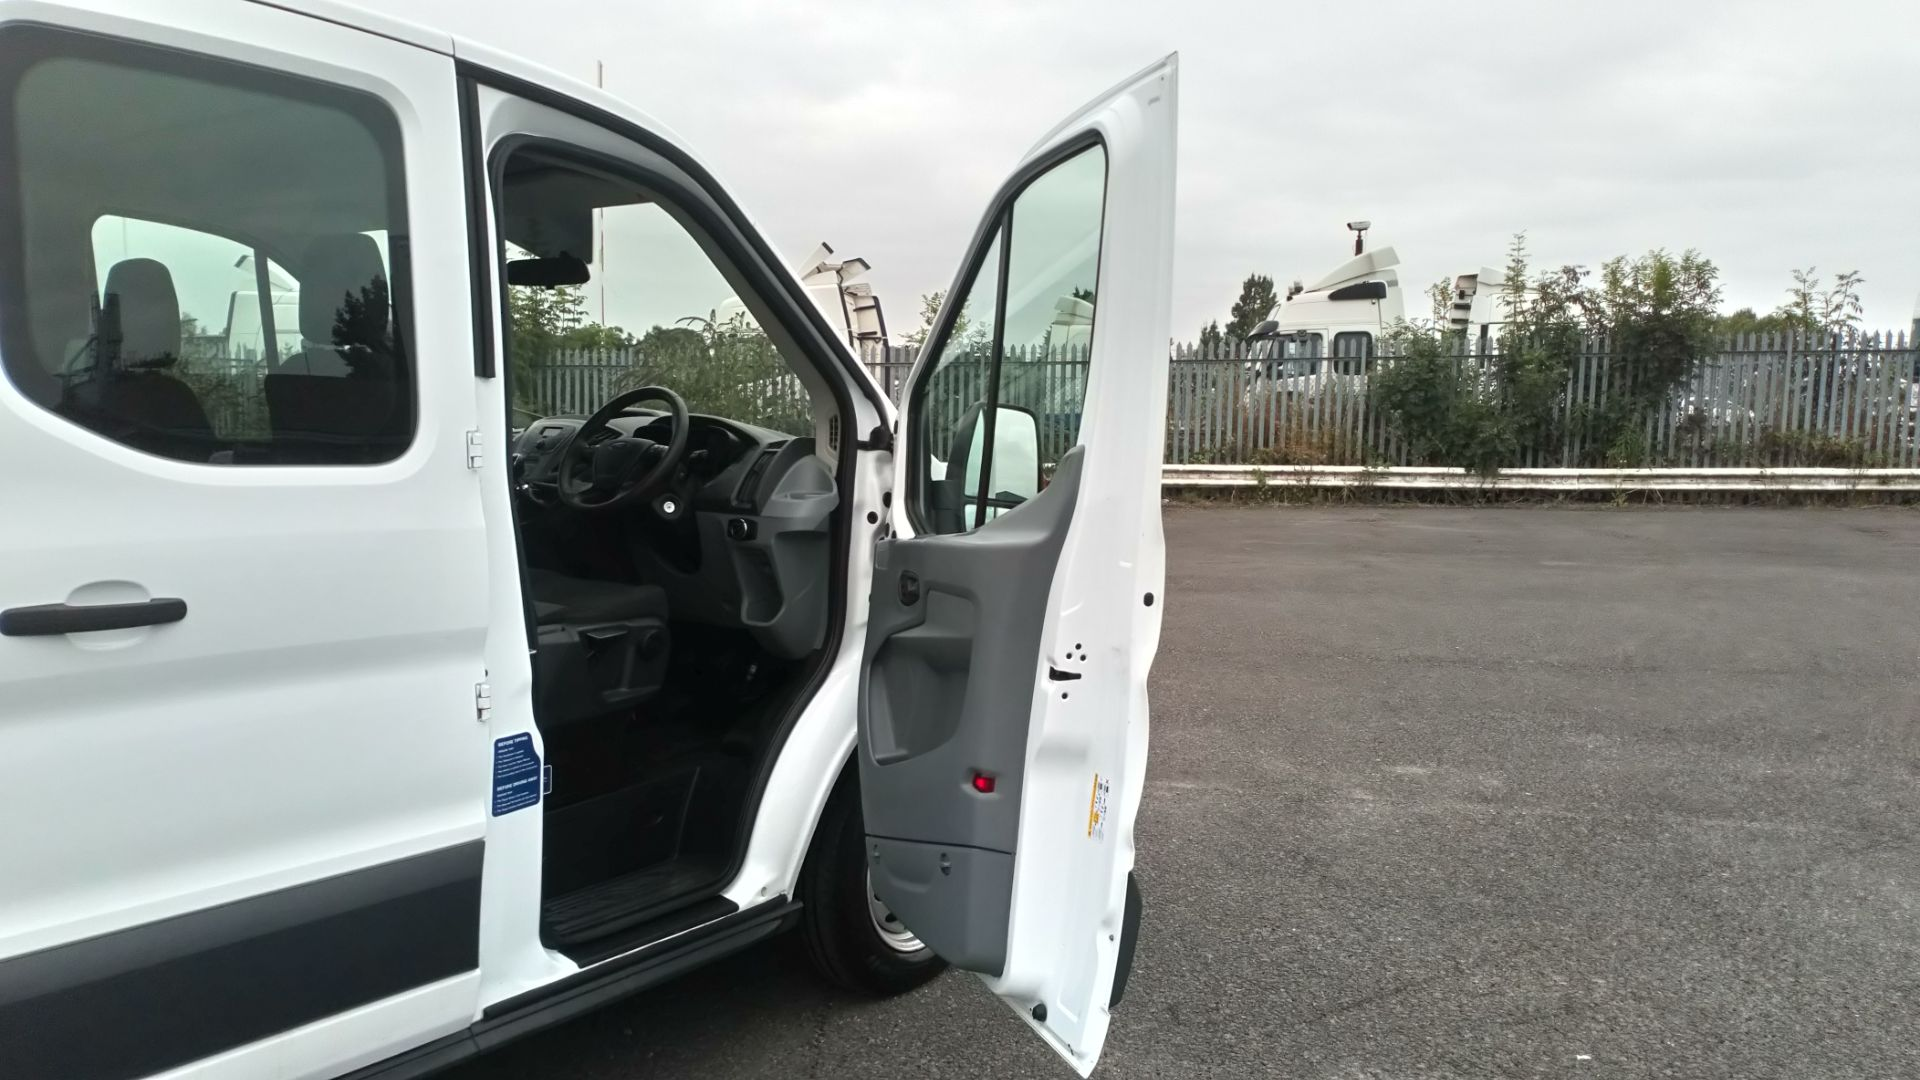 2018 Ford Transit 2.0 Tdci 130Ps H2 Double Cab Tipper (BL18UYX) Image 13